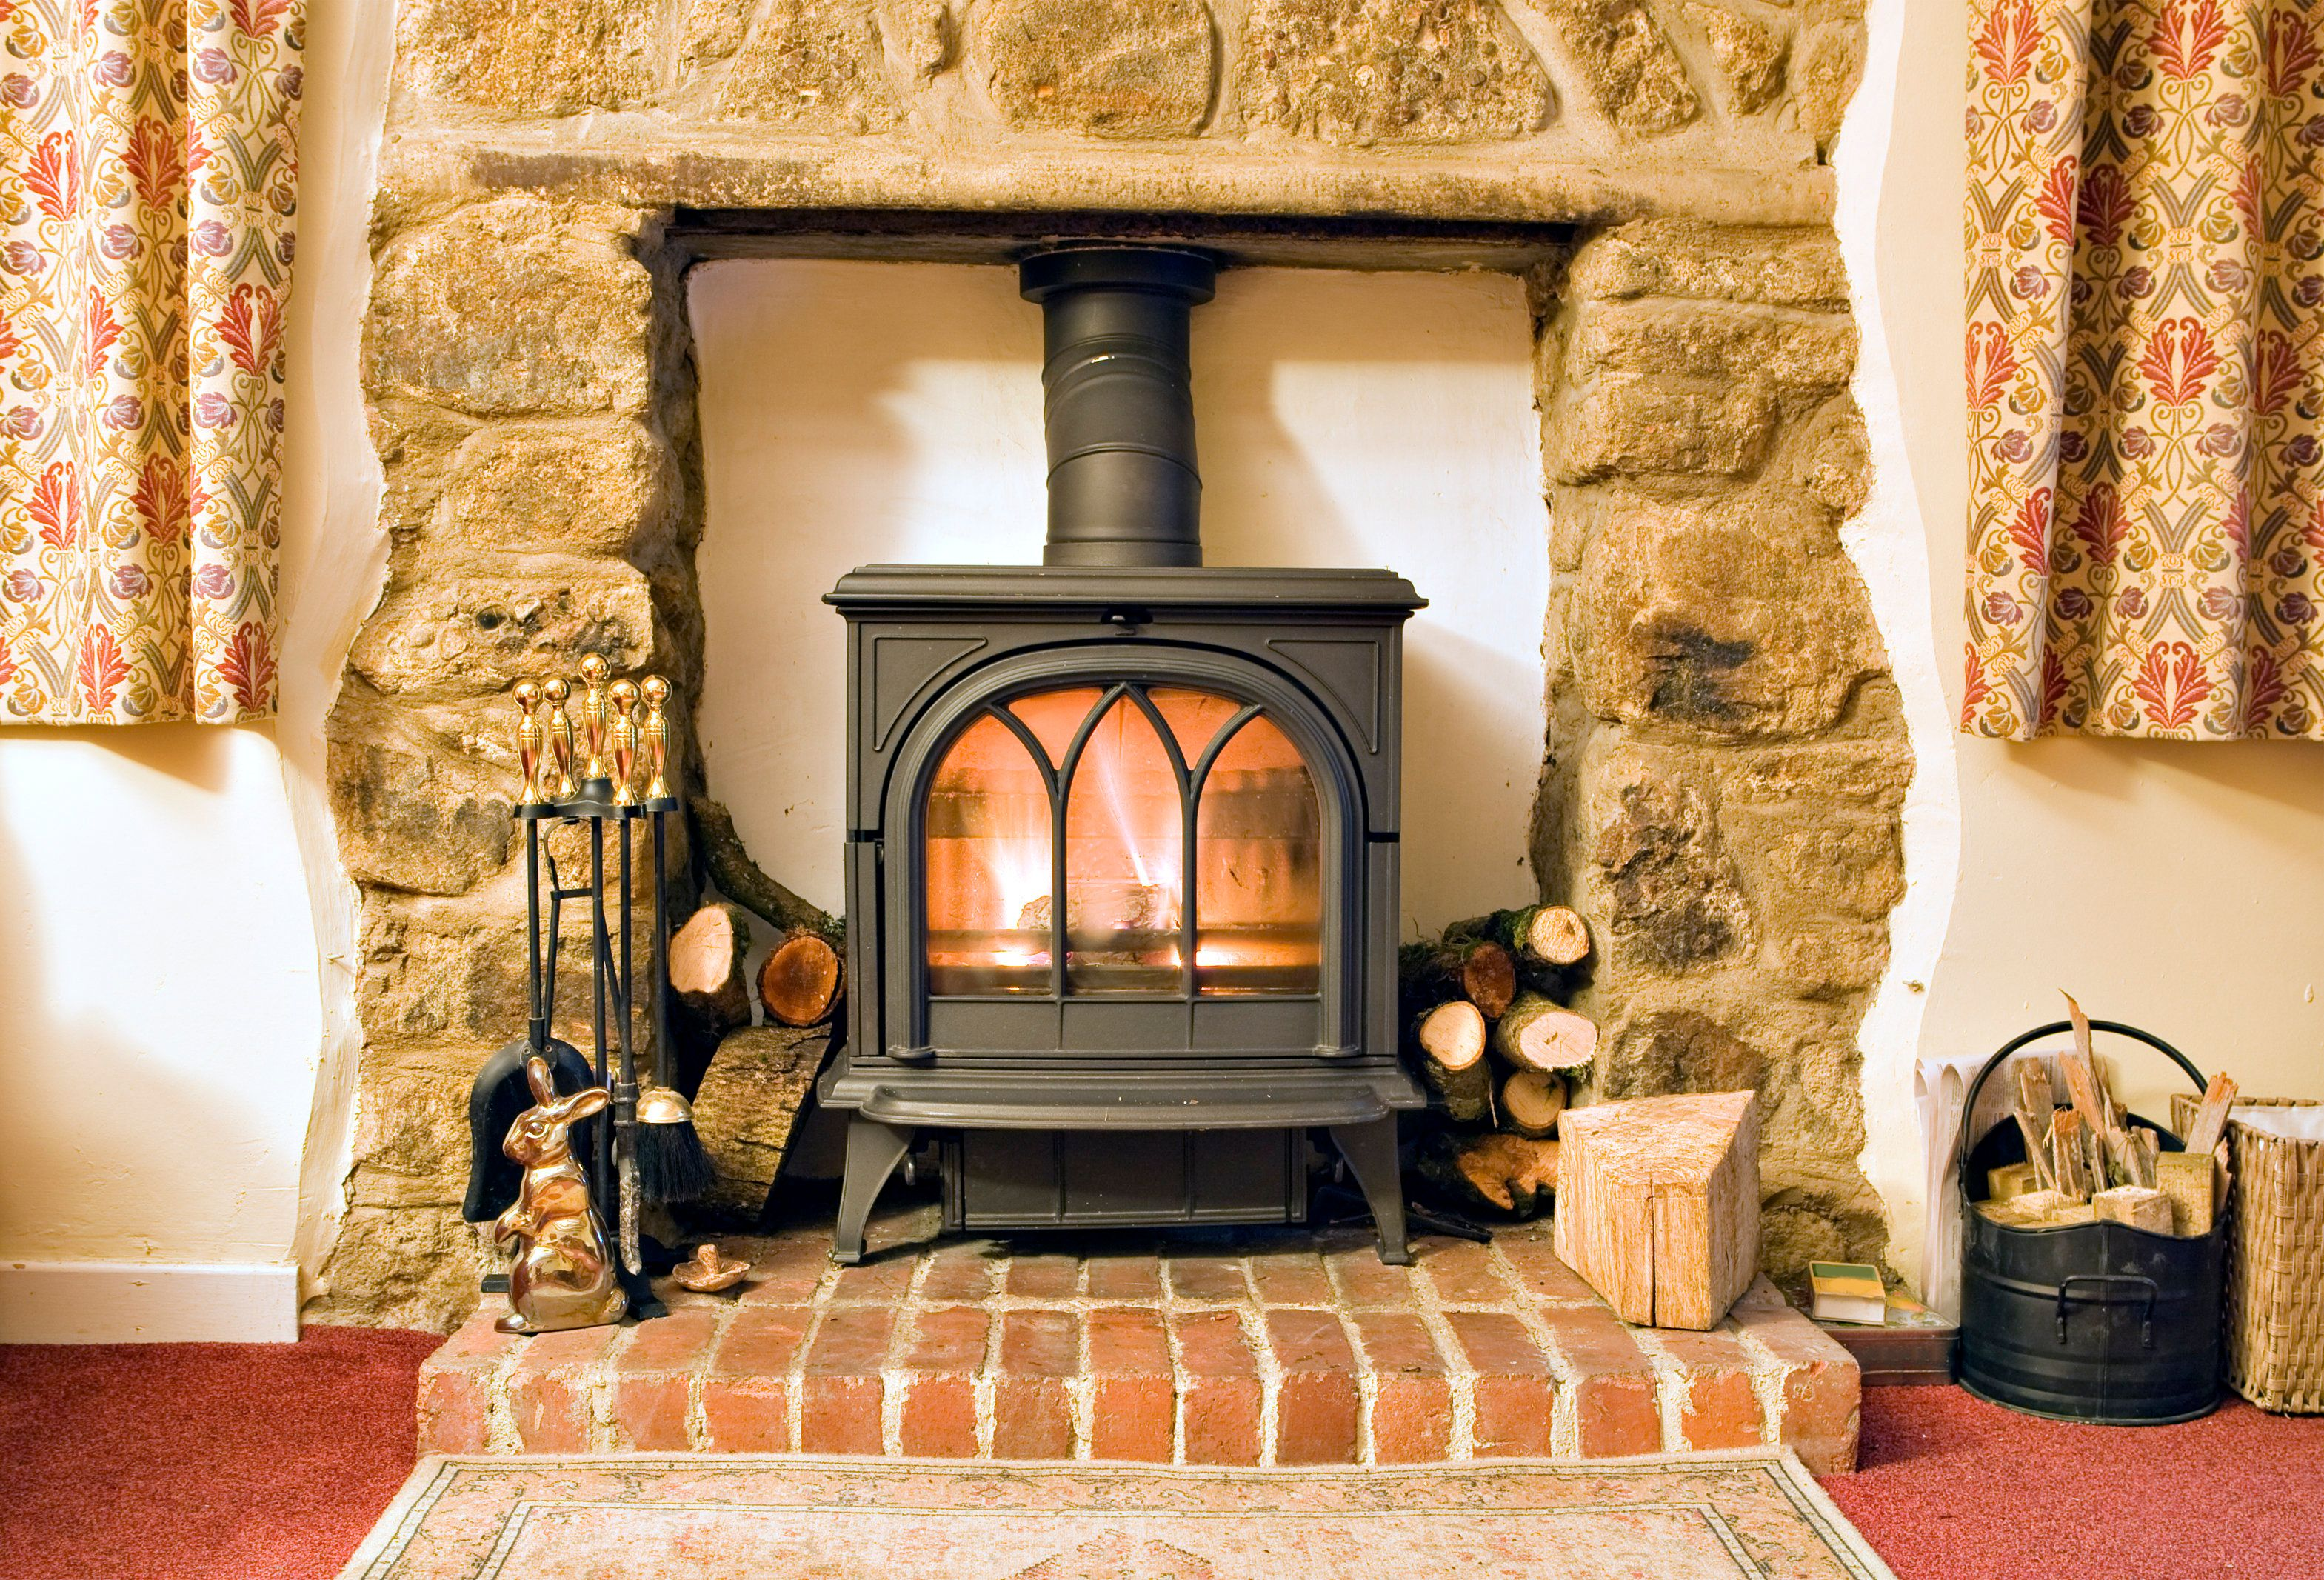 Why Wood Burning Stoves Are Bad For You And The Environment